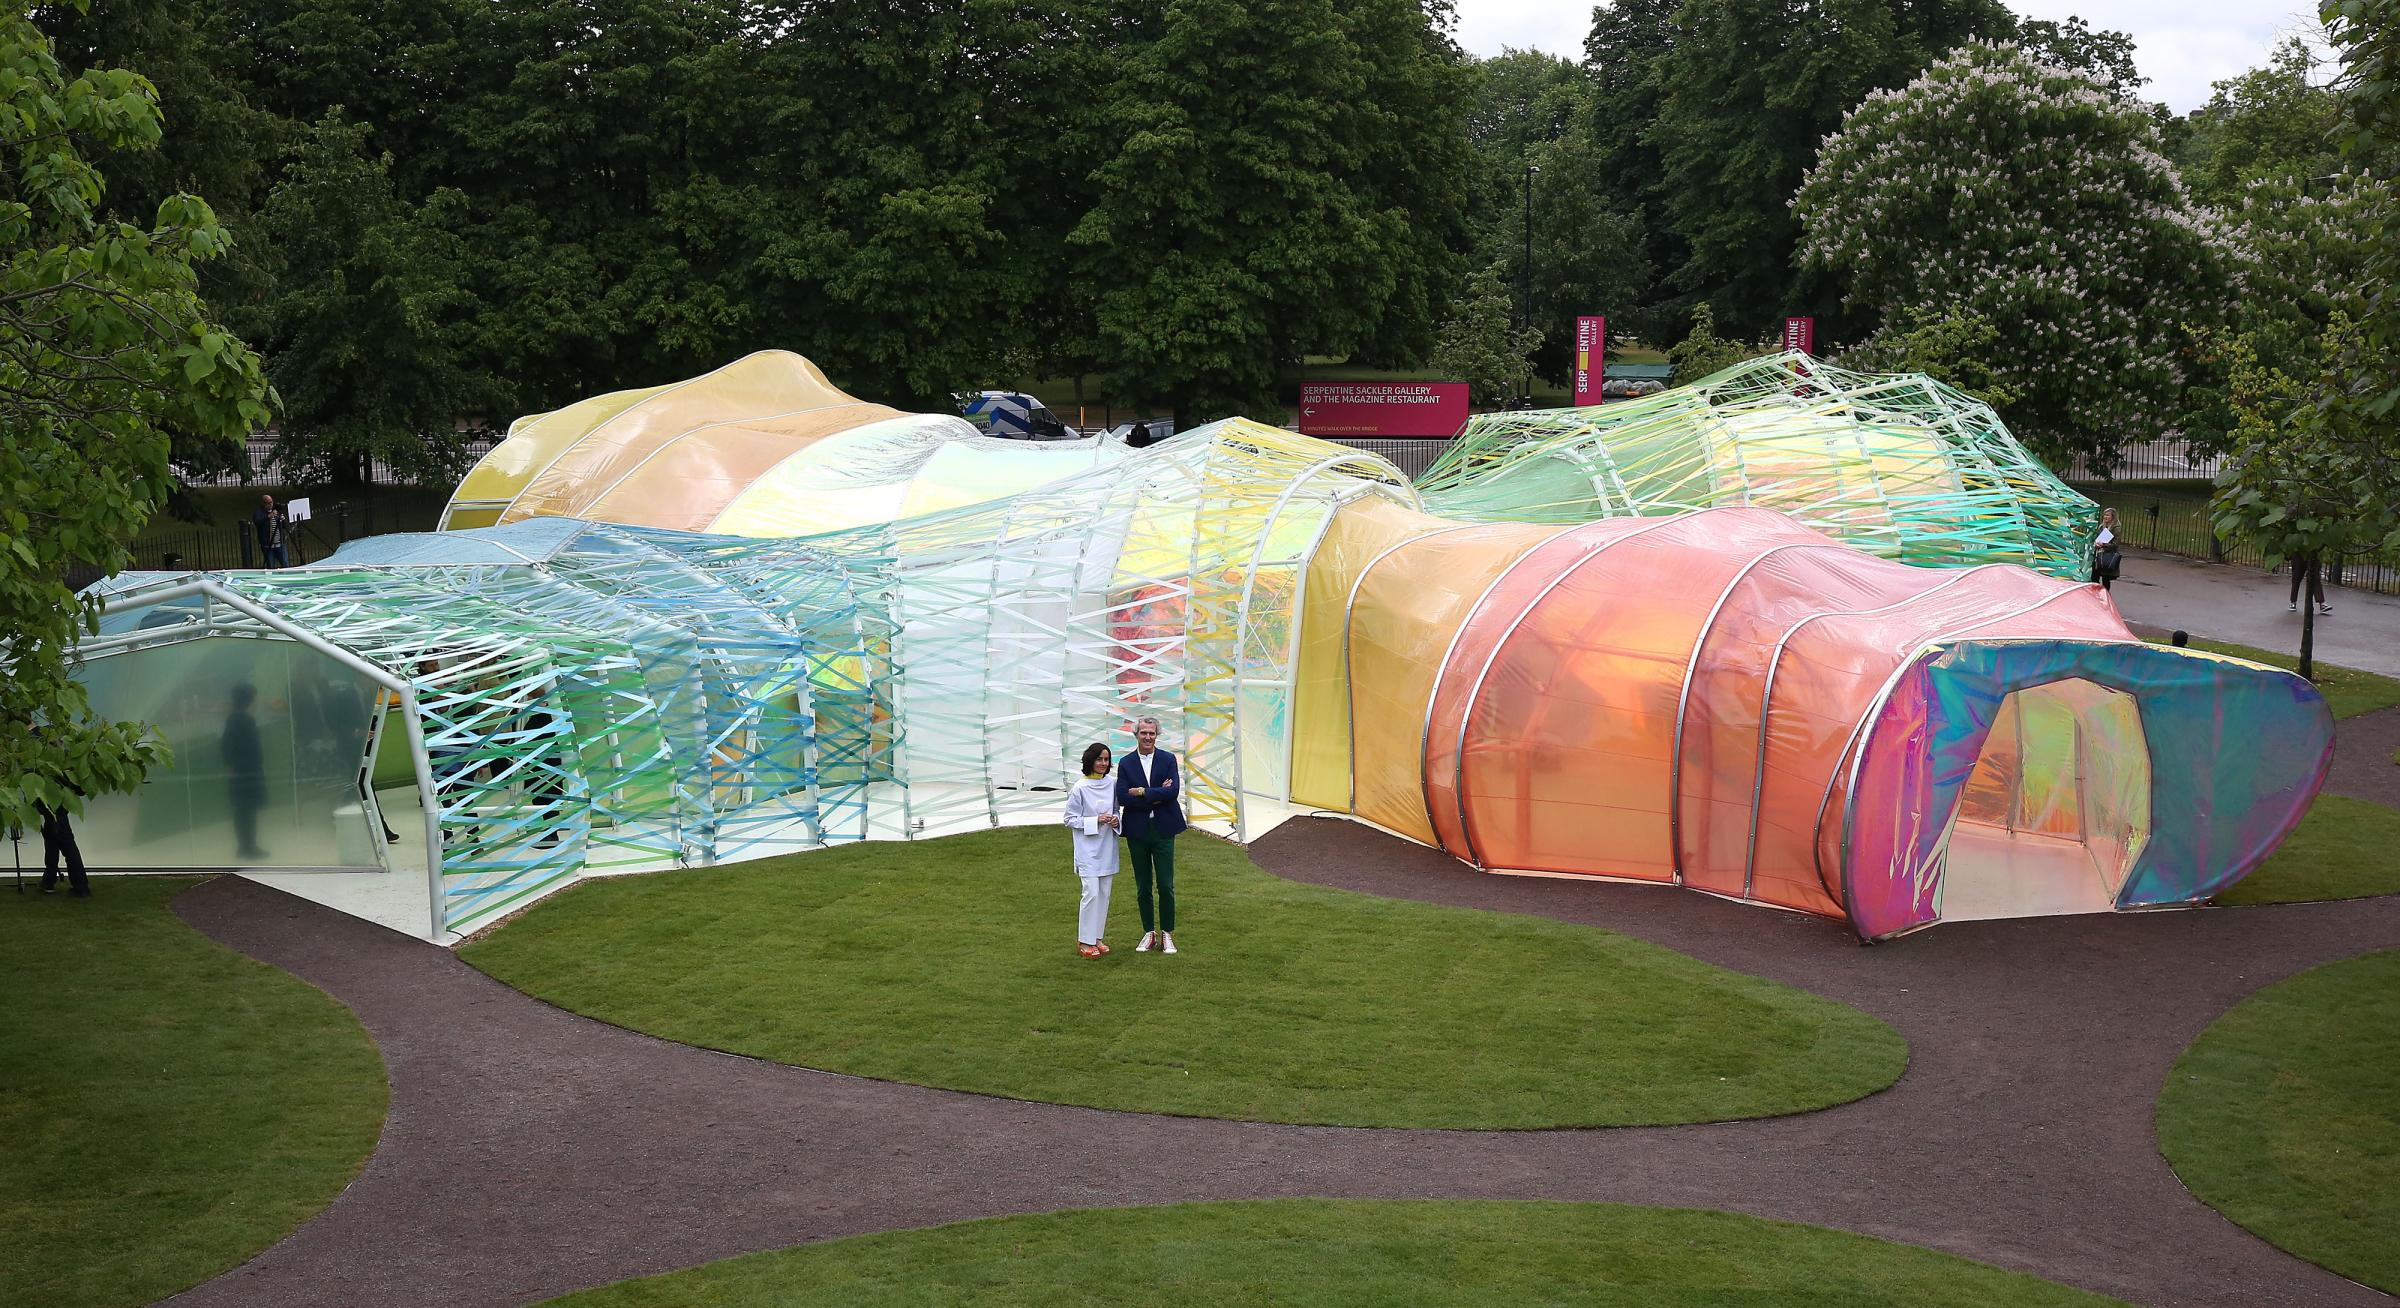 This Is Local London & Serpentine Galleryu0027s new summer pavilion in Kensington Gardens is ...